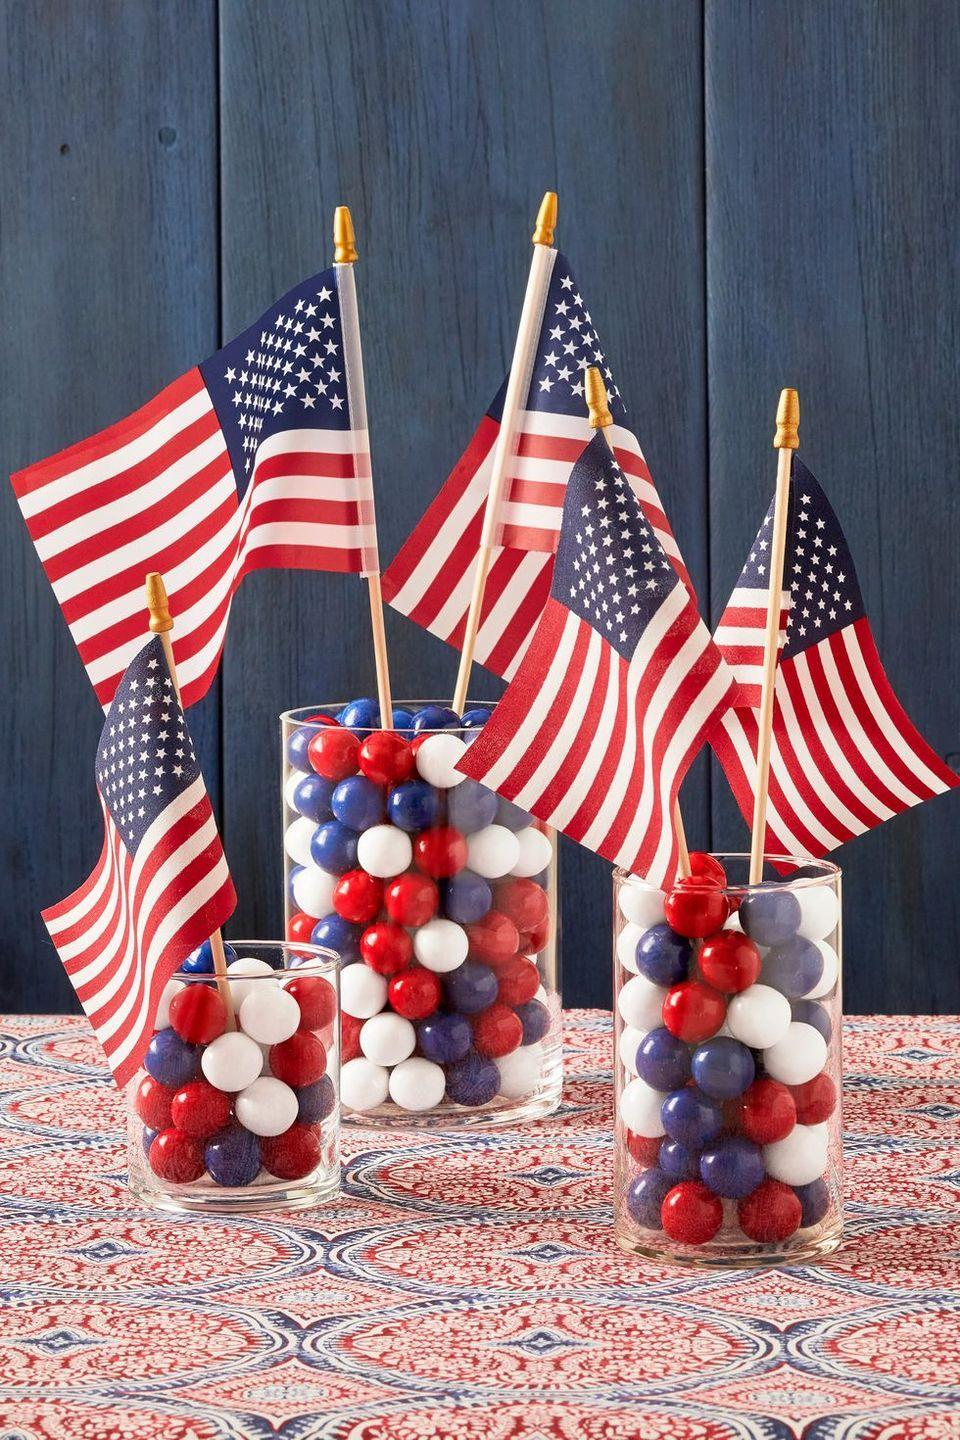 """<p>Is it any surprise that our favorite party ideas are the ones that are, well, edible? Take a cue from this 4th of July décor idea by placing colorful candies into glass holders, then stick flags or other decorations inside. (Pro tip: Make sure the candies you select don't easily melt.)</p><p><a class=""""link rapid-noclick-resp"""" href=""""https://go.redirectingat.com?id=74968X1596630&url=https%3A%2F%2Fwww.walmart.com%2Fsearch%2F%3Fquery%3Dsmall%2Bamerican%2Bflags&sref=https%3A%2F%2Fwww.thepioneerwoman.com%2Fjust-for-fun%2Fg36599700%2Fsummer-party-ideas%2F"""" rel=""""nofollow noopener"""" target=""""_blank"""" data-ylk=""""slk:SHOP AMERICAN FLAGS"""">SHOP AMERICAN FLAGS</a></p>"""